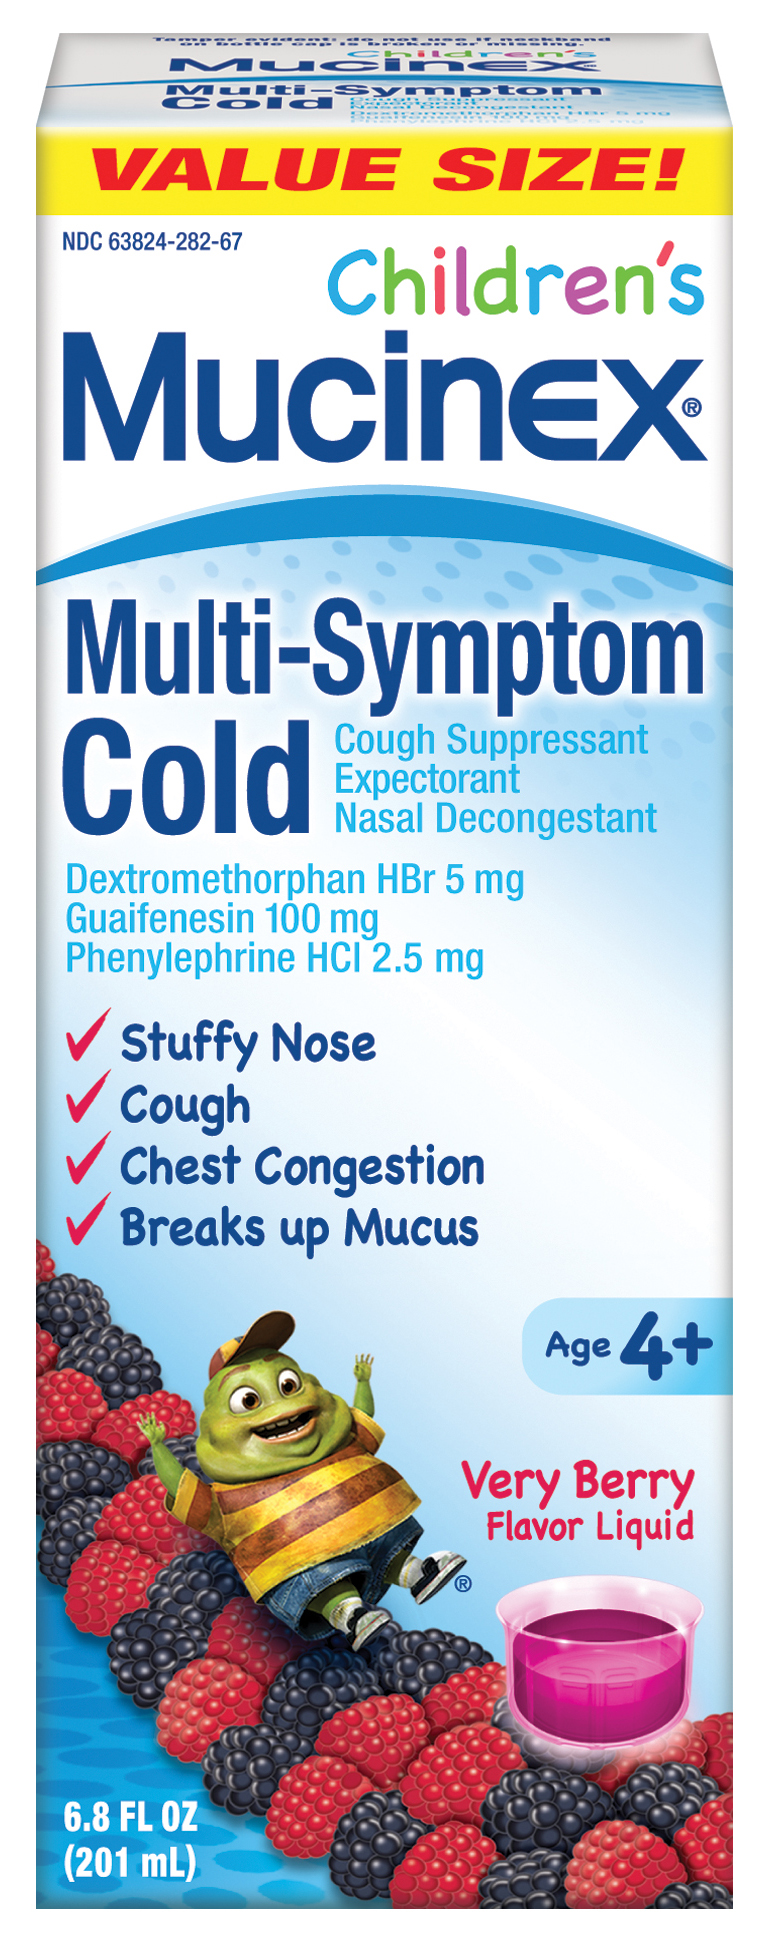 MUCINEX® CHILDREN'S Day Time Night Time - Multi-Symptom Cold - Very Berry (Day Time)